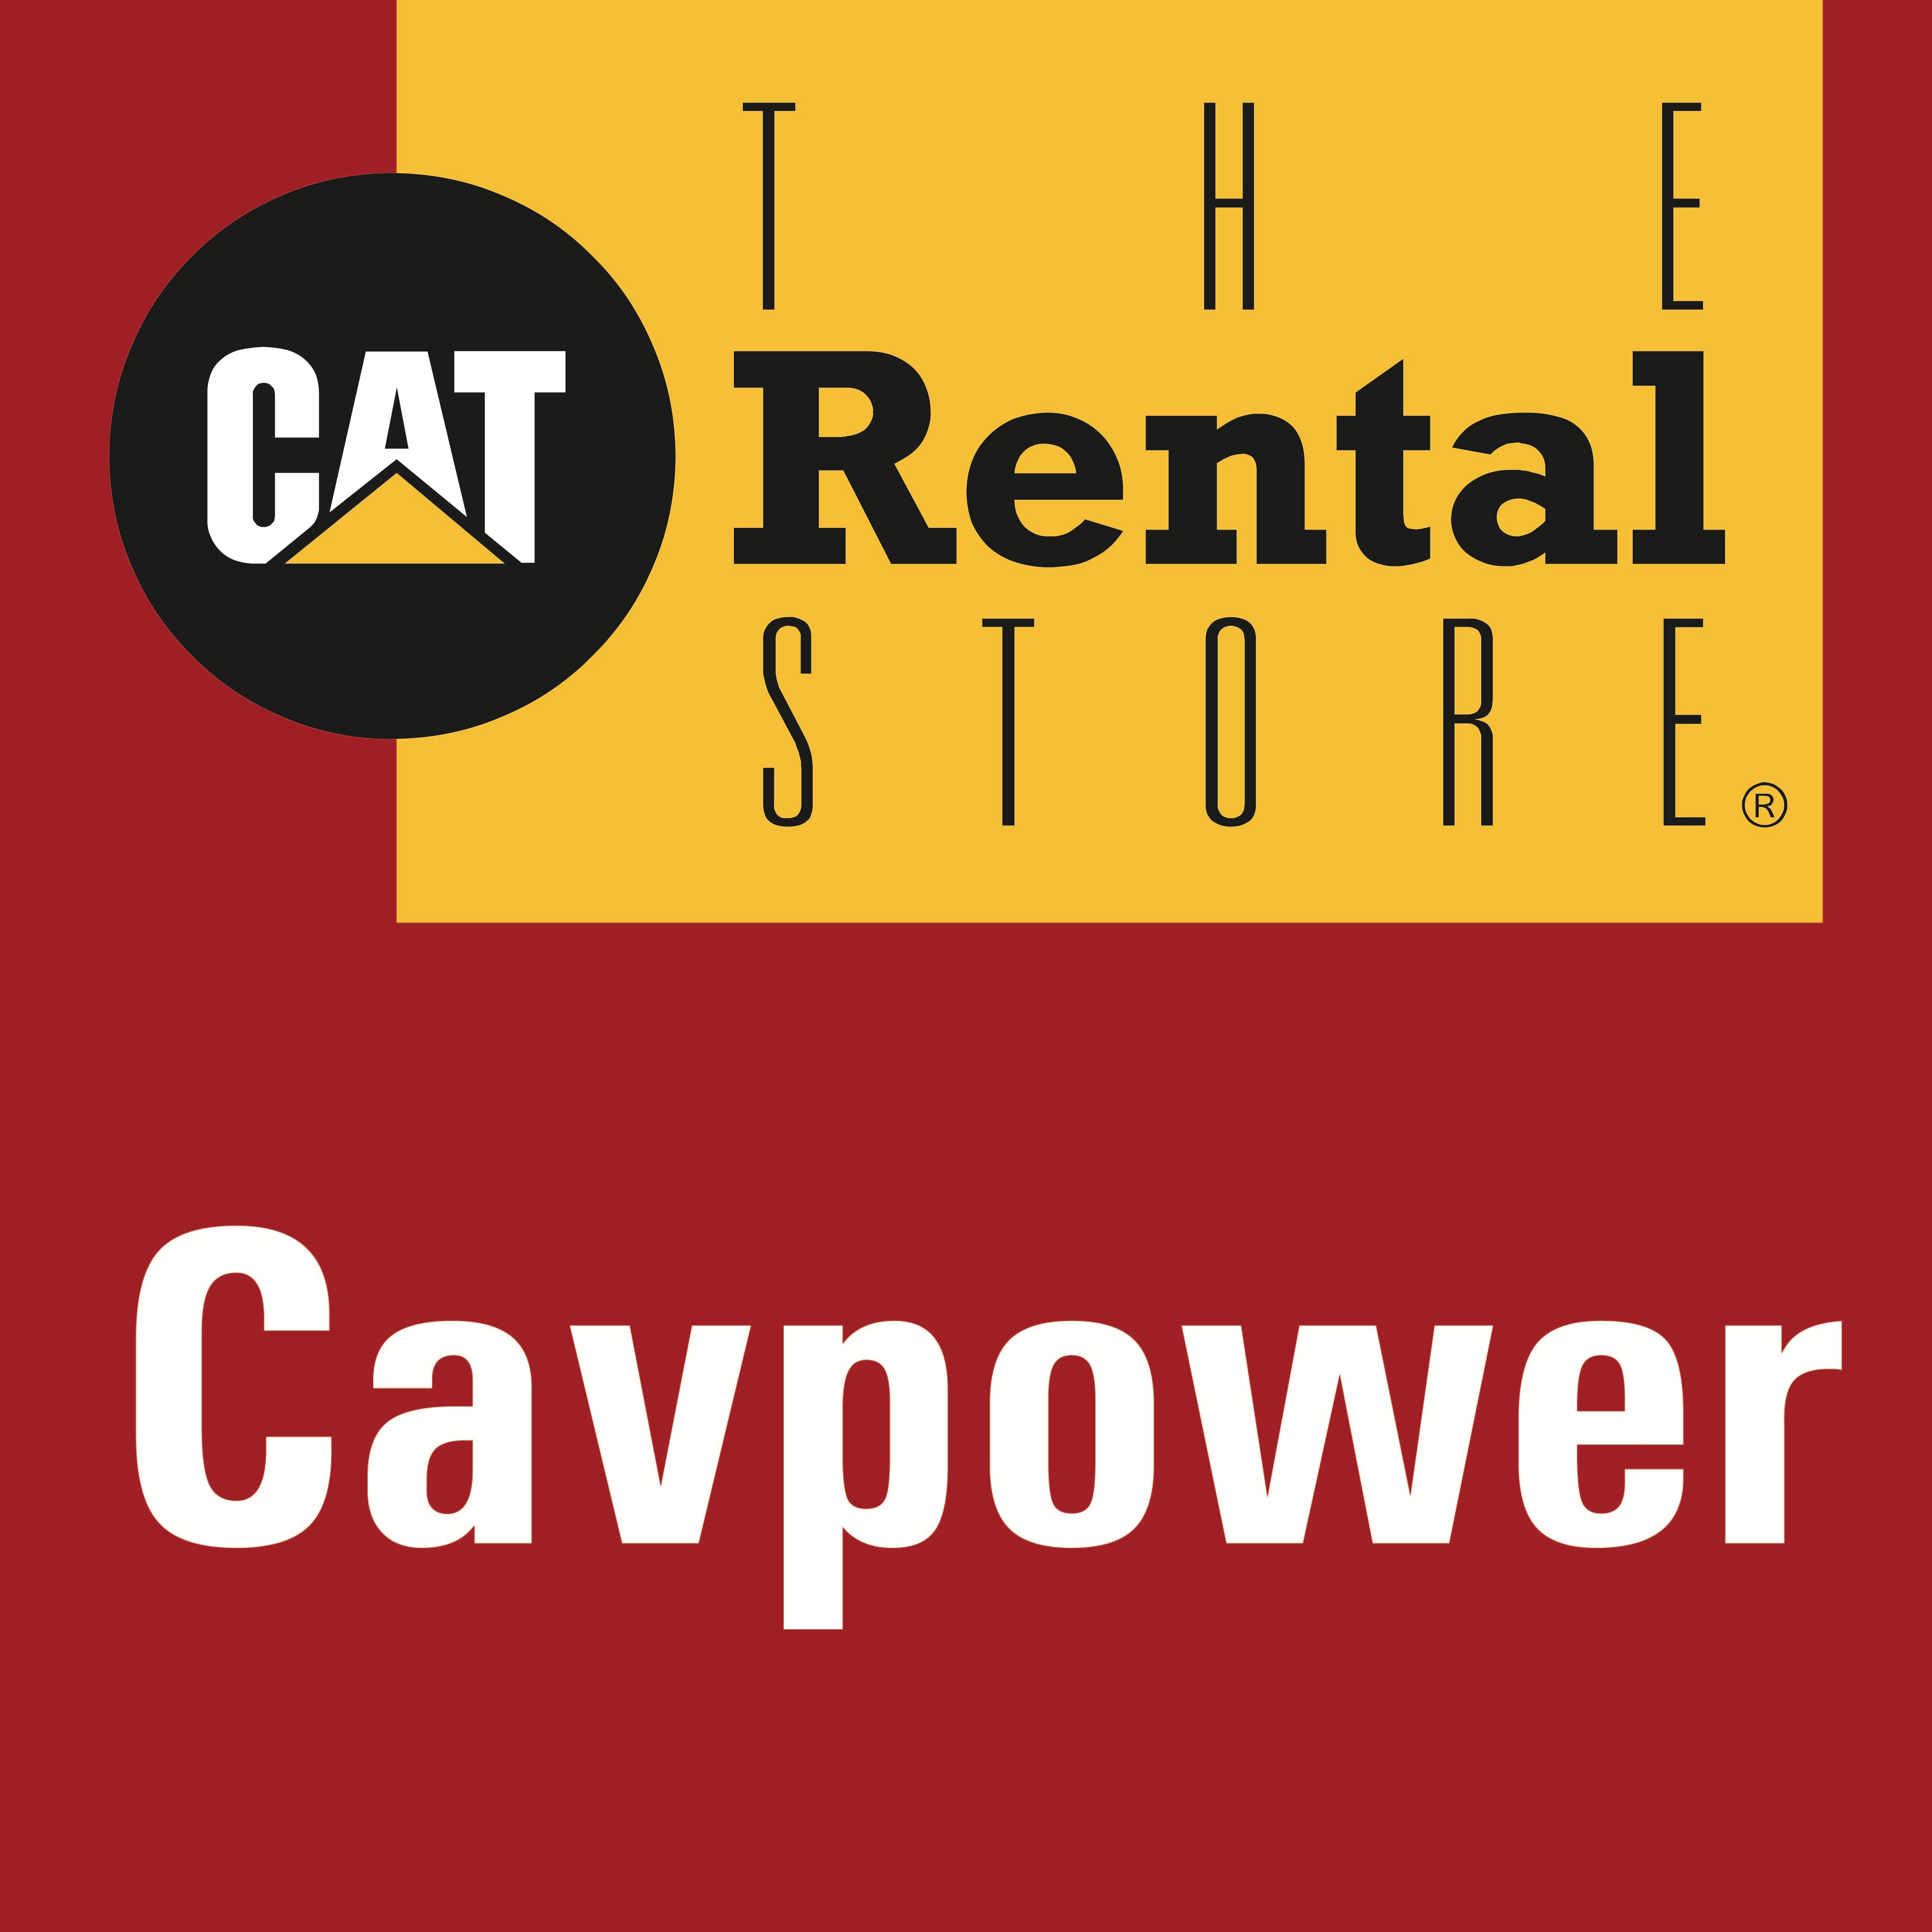 Cavpower/The CAT Rental Store